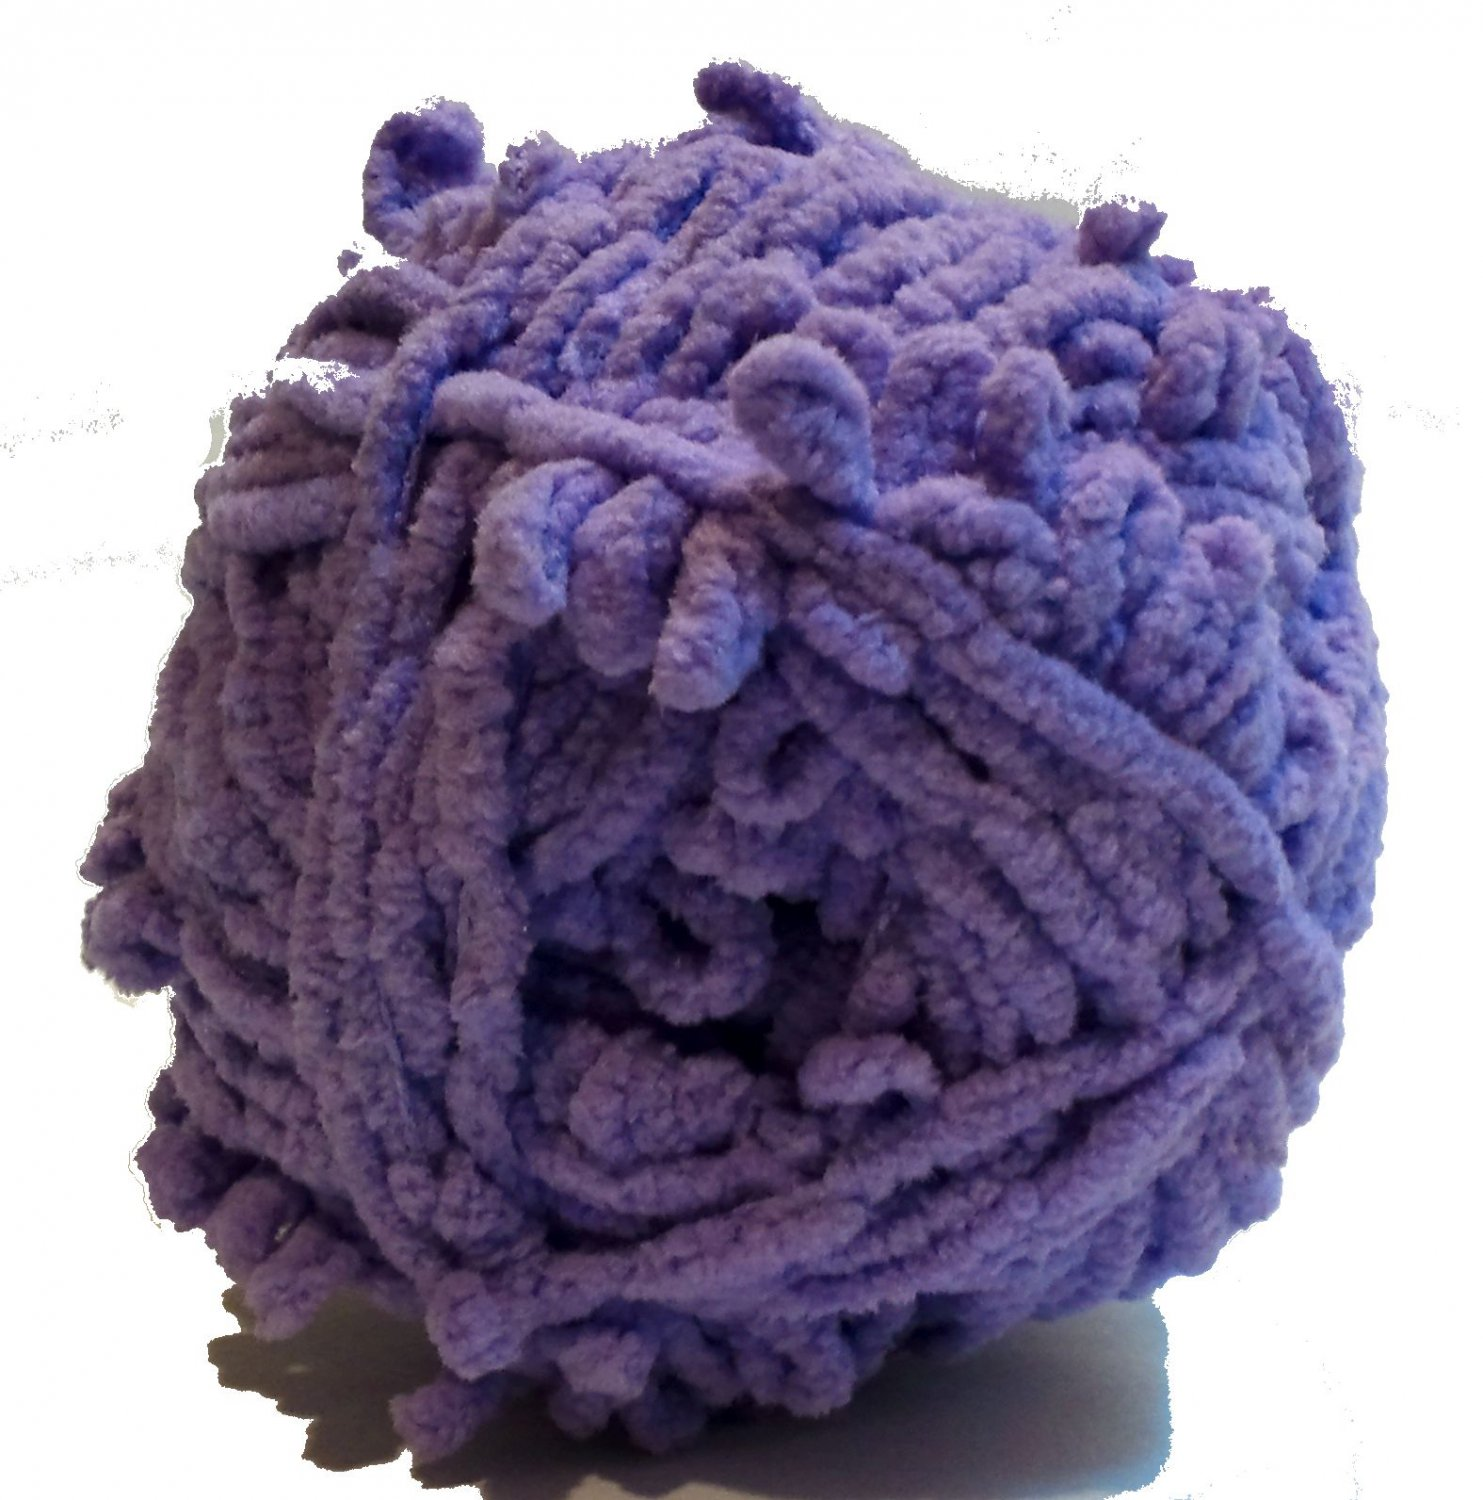 Lolli Loopy Chenille Yarn Grape 9531 Red Heart 3.5 ounces 80 yards Super Bulky 6 Lavender